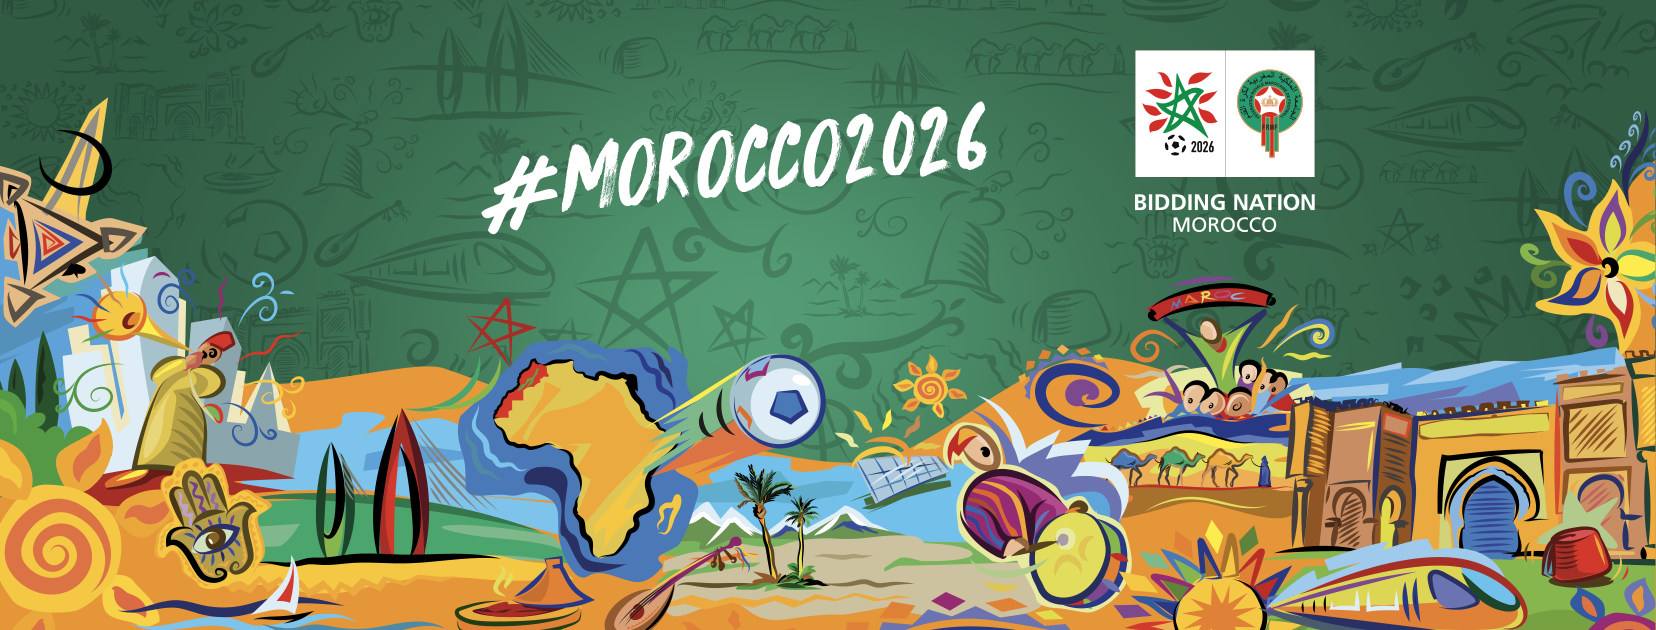 FIFA World Cup 2026 hosting bid: Morocco delegation visits Pakistan tomorrow to seek support [The News]